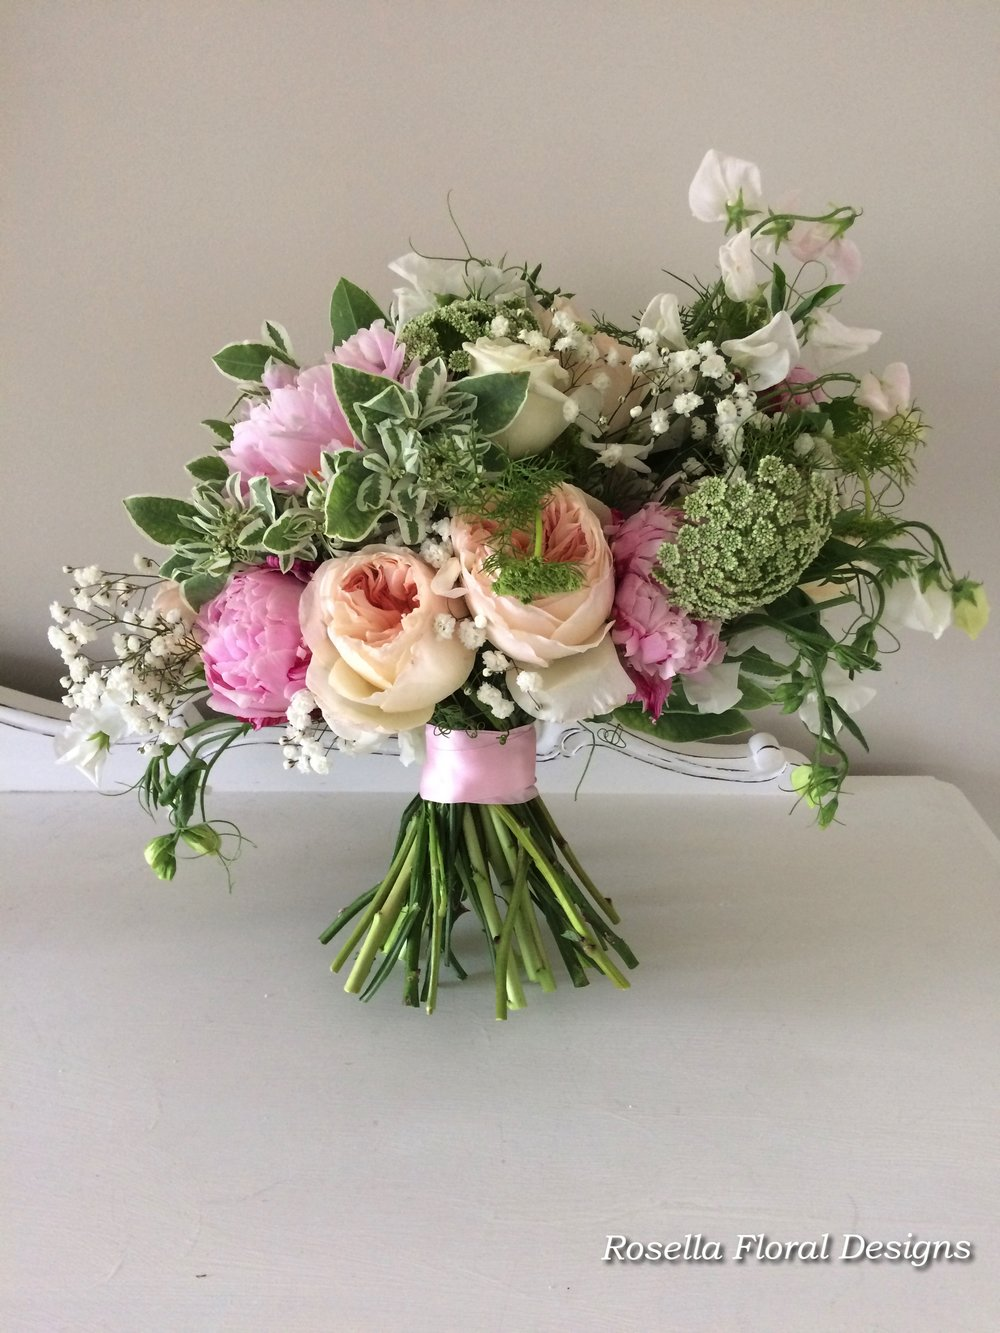 Loose natural bridal bouquet peonies david austin roses.jpg